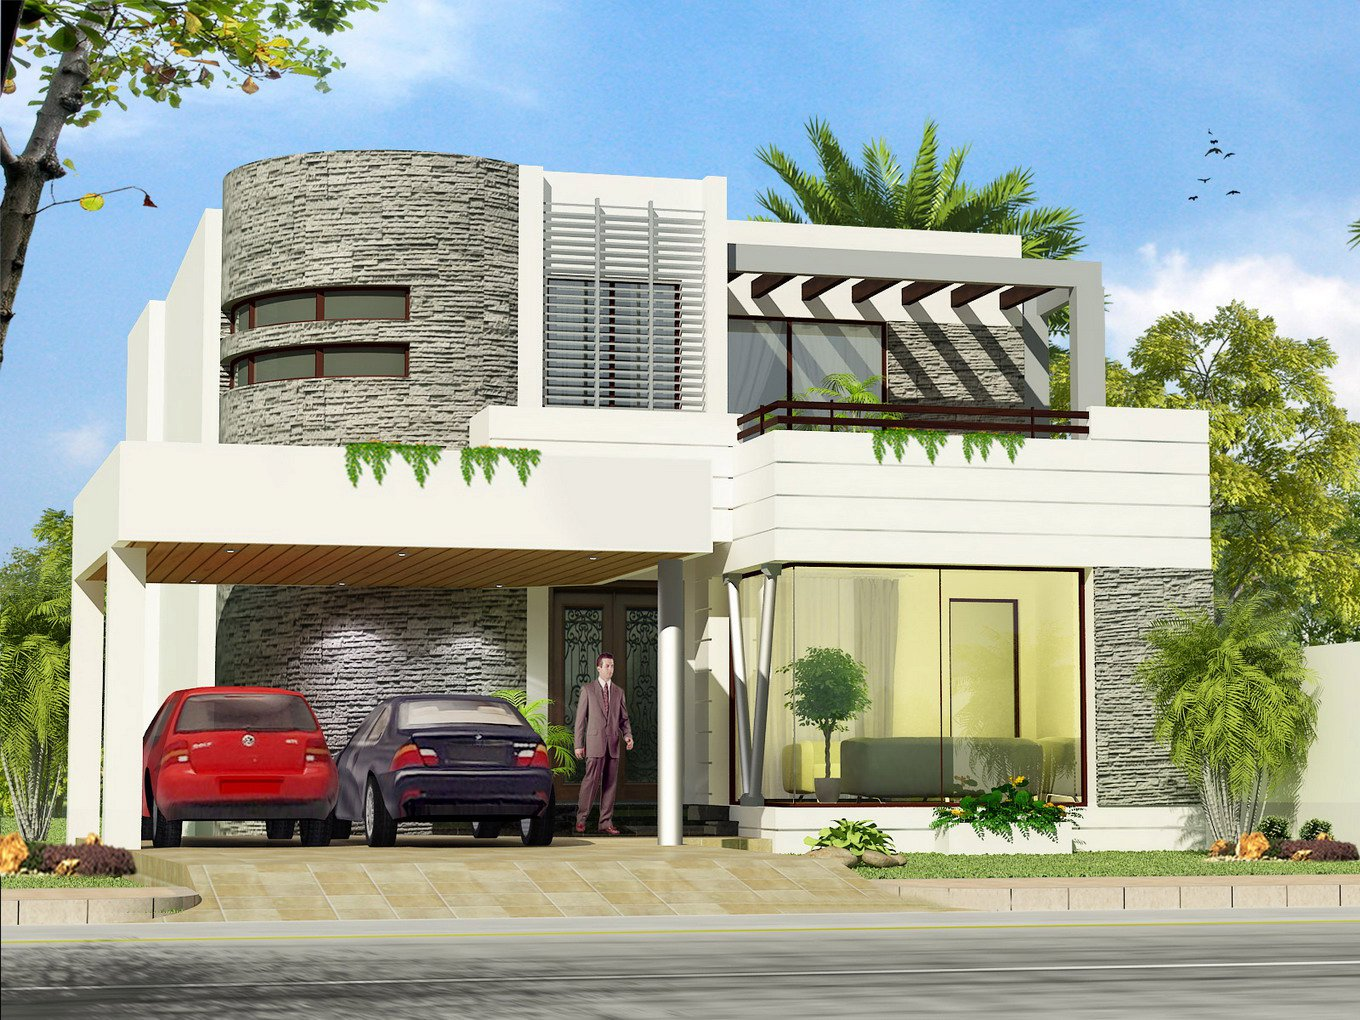 New home designs latest modern homes beautiful latest for New home designs pictures in pakistan